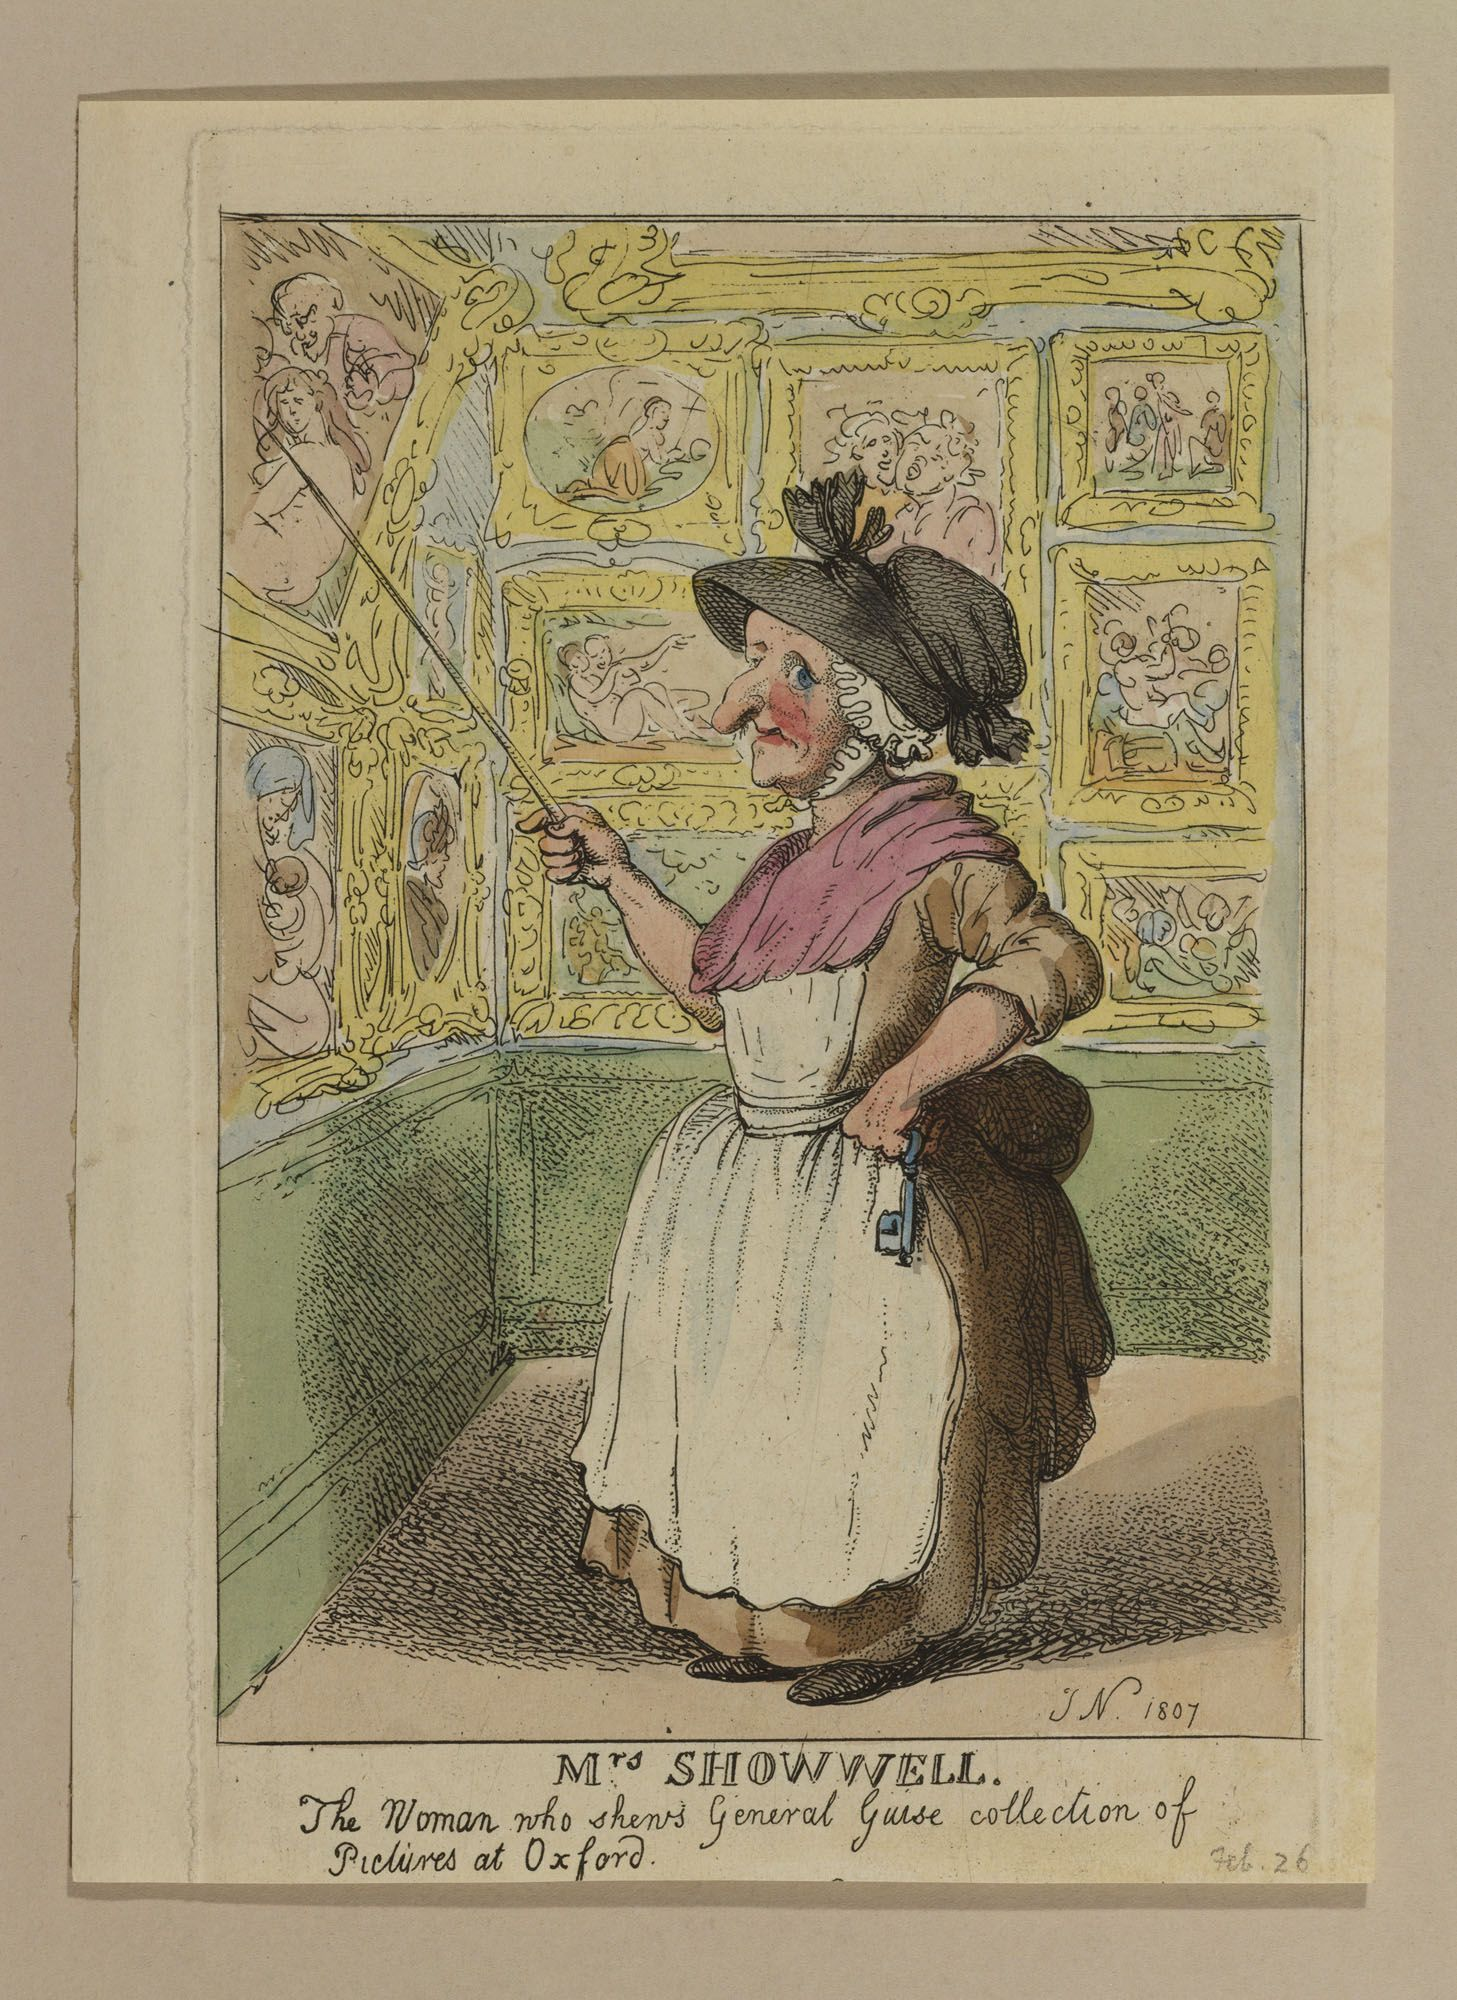 Mrs Showwell. The Woman who shews General Guise collection of Pictures at Oxford. | Rowlandson. 1807